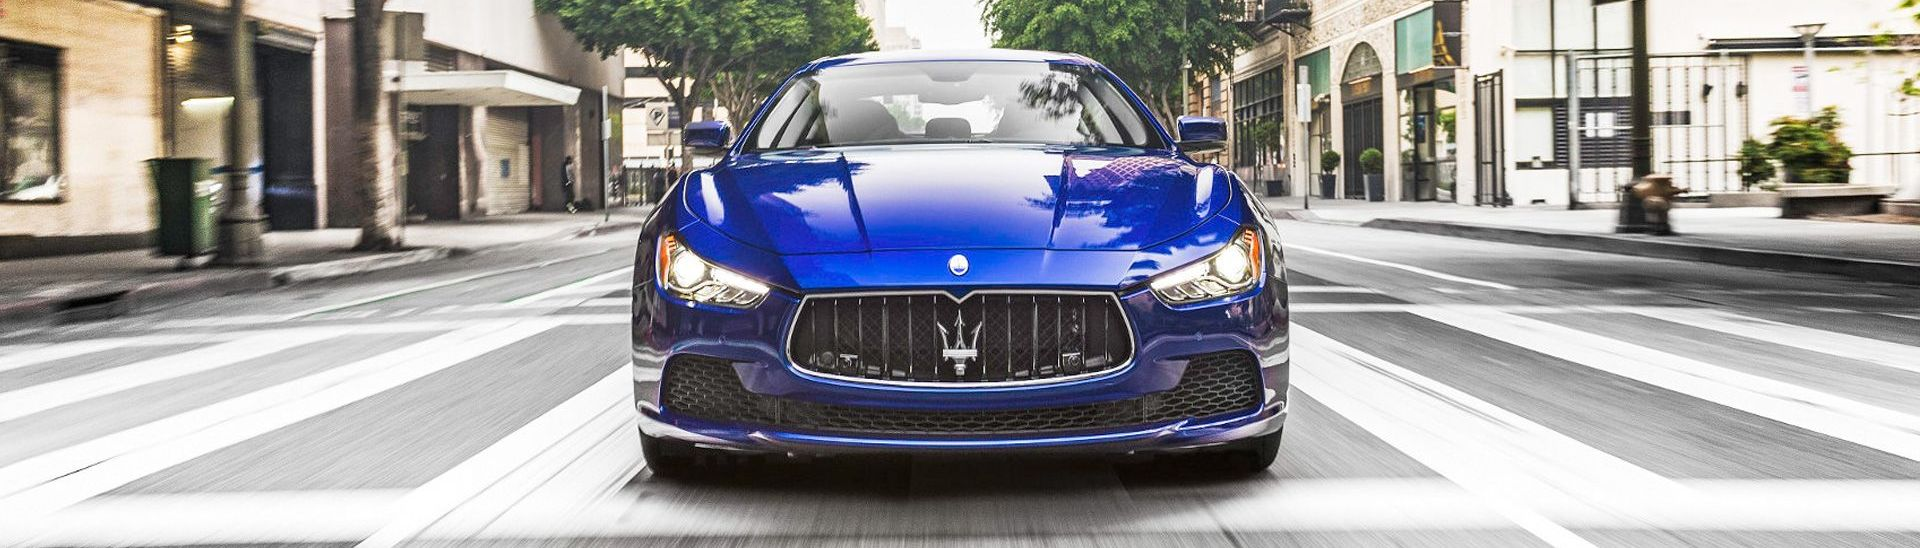 Maserati Ghibli For Lease In Austin TX Maserati Of Austin - Sports cars you can lease